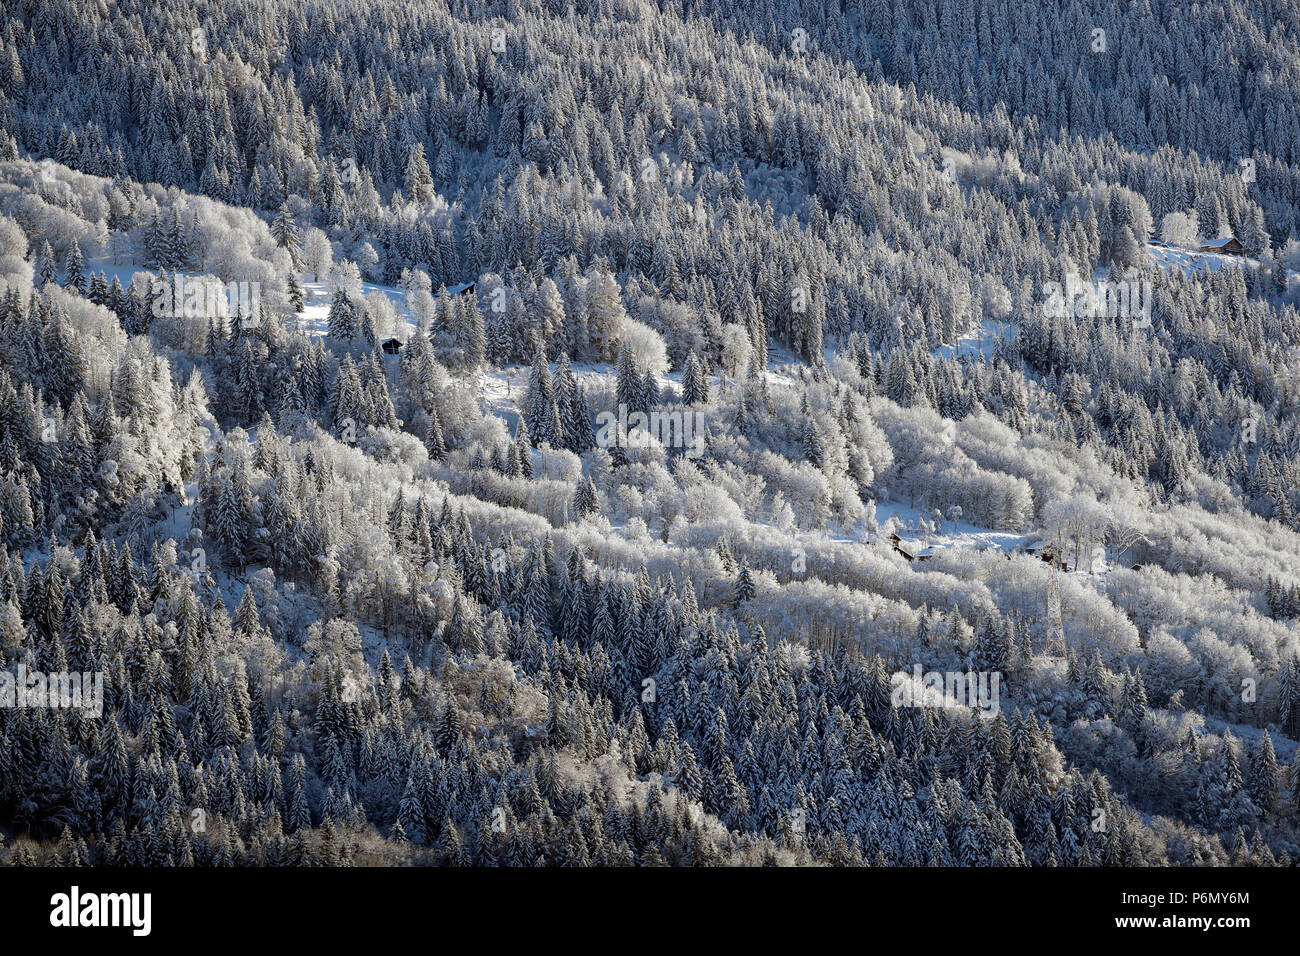 French Alps. Le Prarion. Snow covered fir trees in winter.  Saint-Gervais. France. - Stock Image